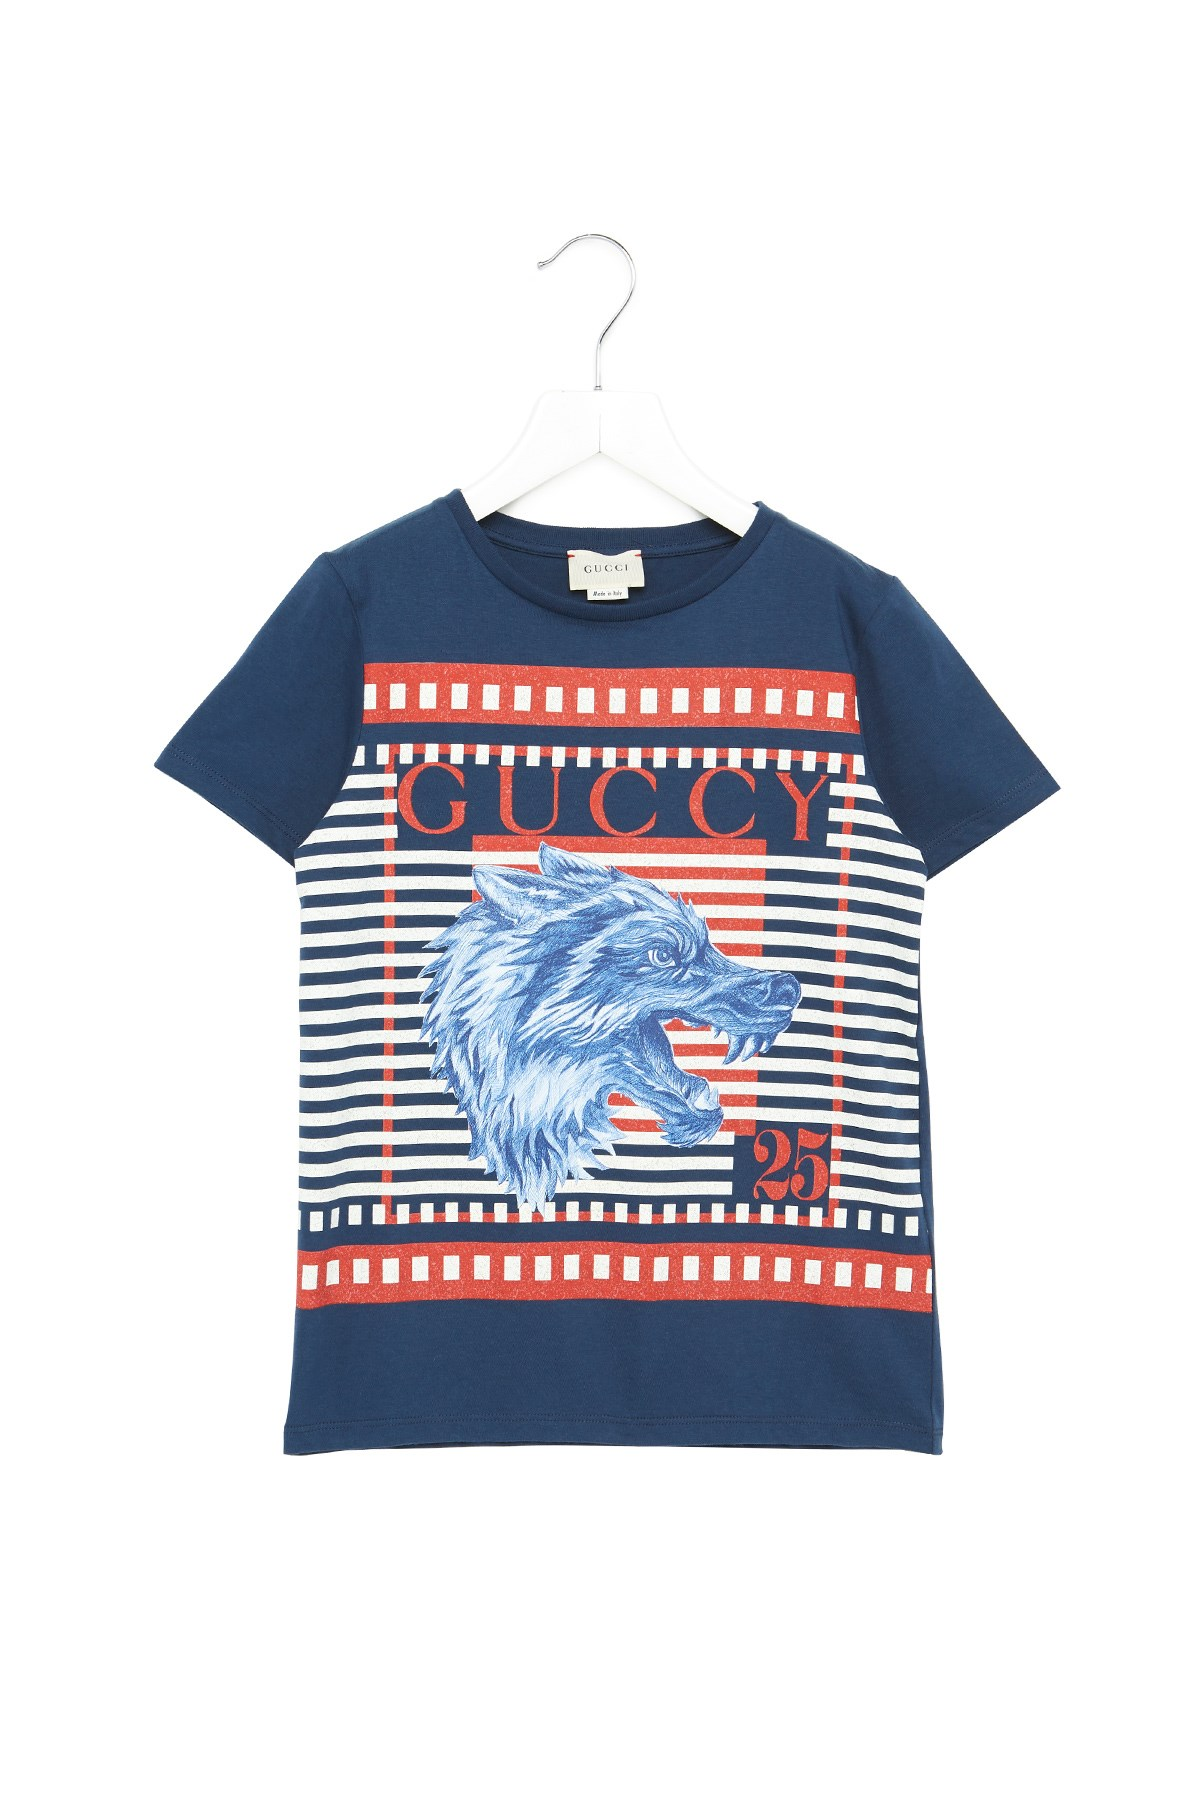 c4a370aa7ee gucci printed t-shirt available on julian-fashion.com - 59186